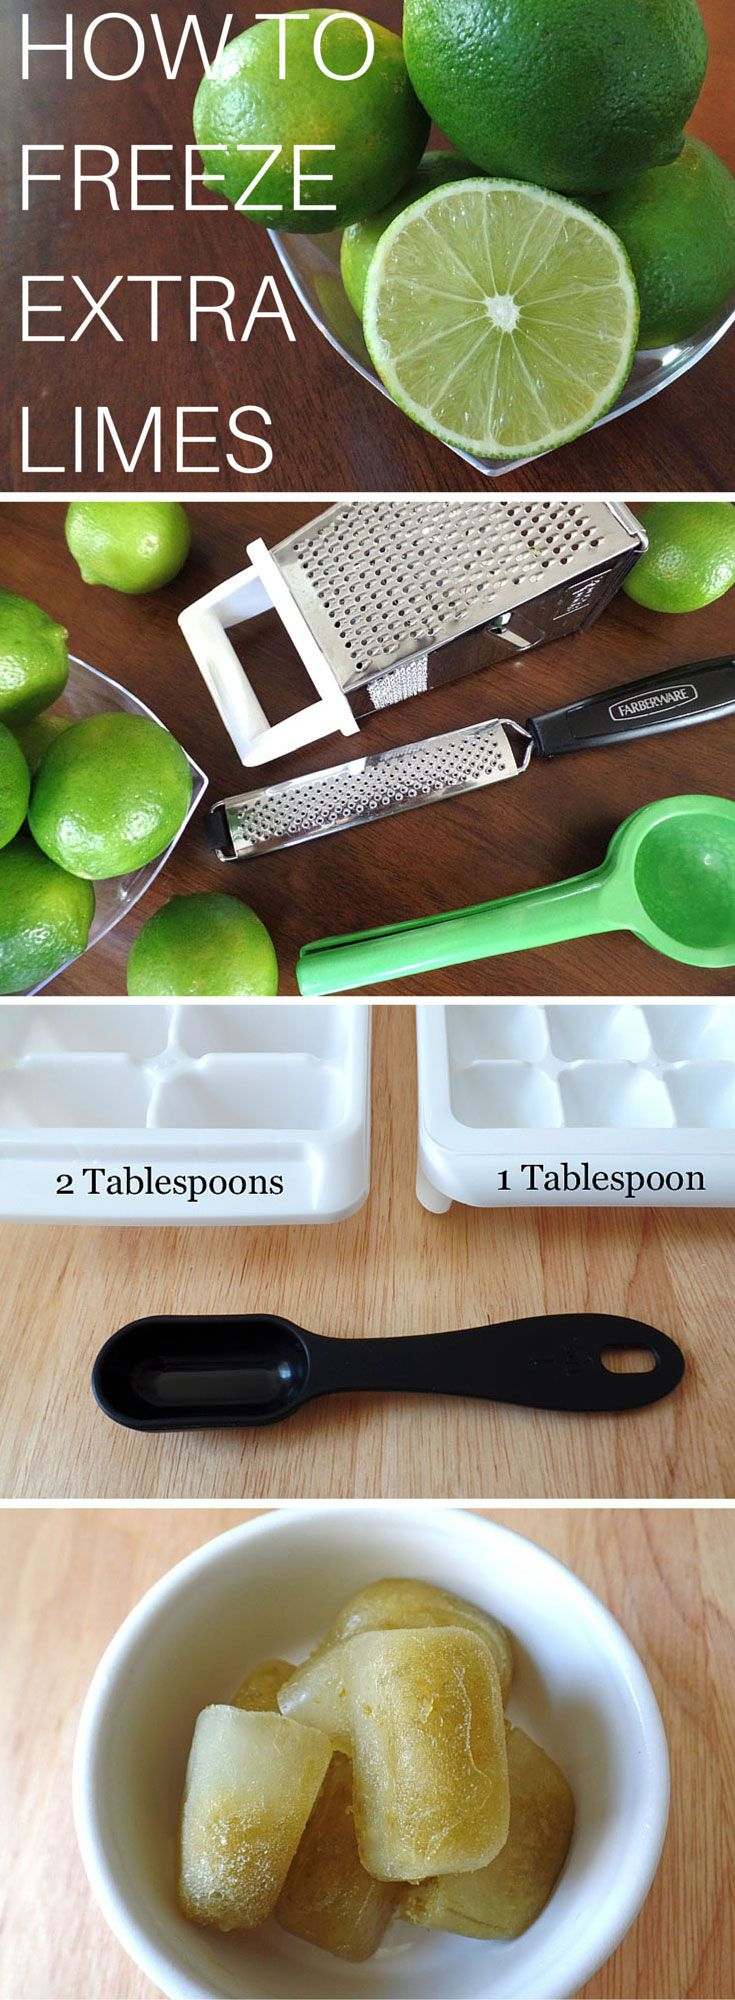 Don't know what to do with those ageing limes in your produce drawer?  Follow this simple guide for how to freeze extra lime juice (and zest) and make sure your limes don't get wasted.